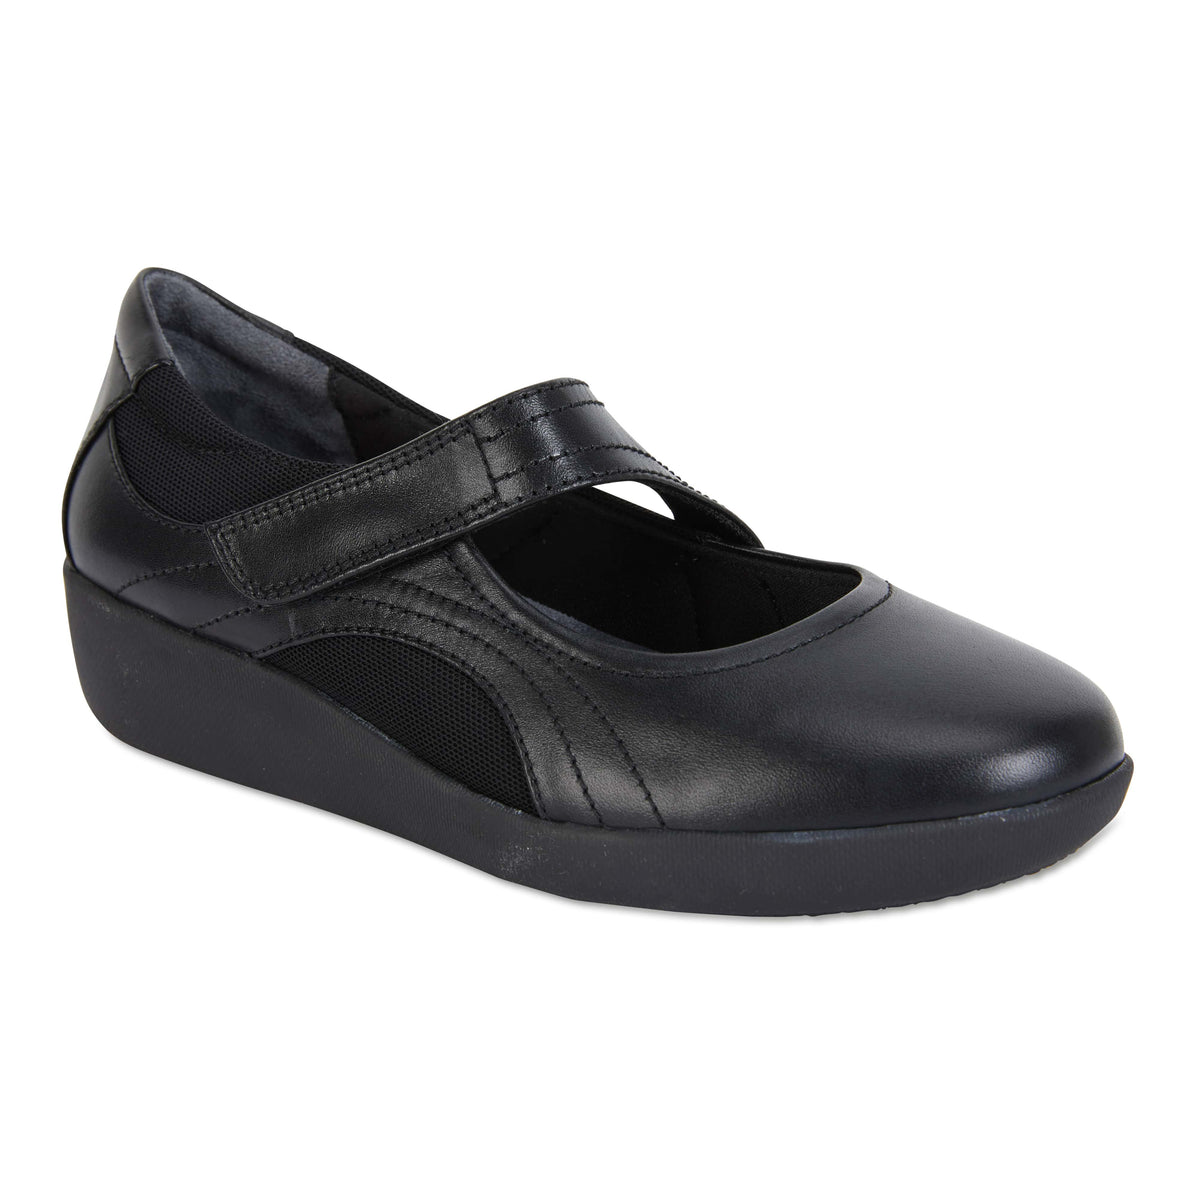 Bronwyn Loafer in Black Leather